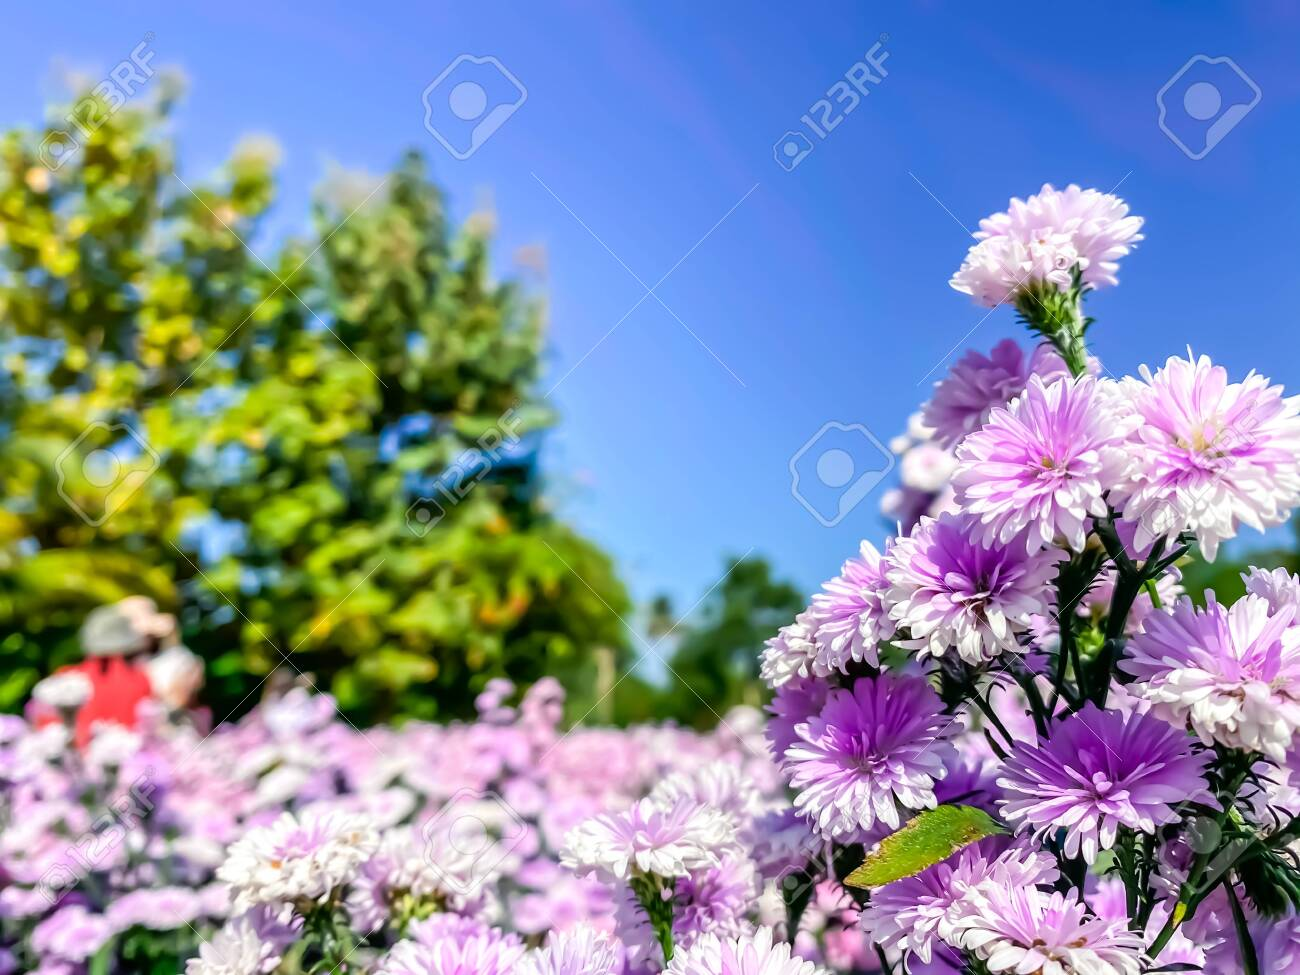 Beautiful Flowers Blooming Field In Farm Nature Wallpaper Backgrounds Stock Photo Picture And Royalty Free Image Image 138458411